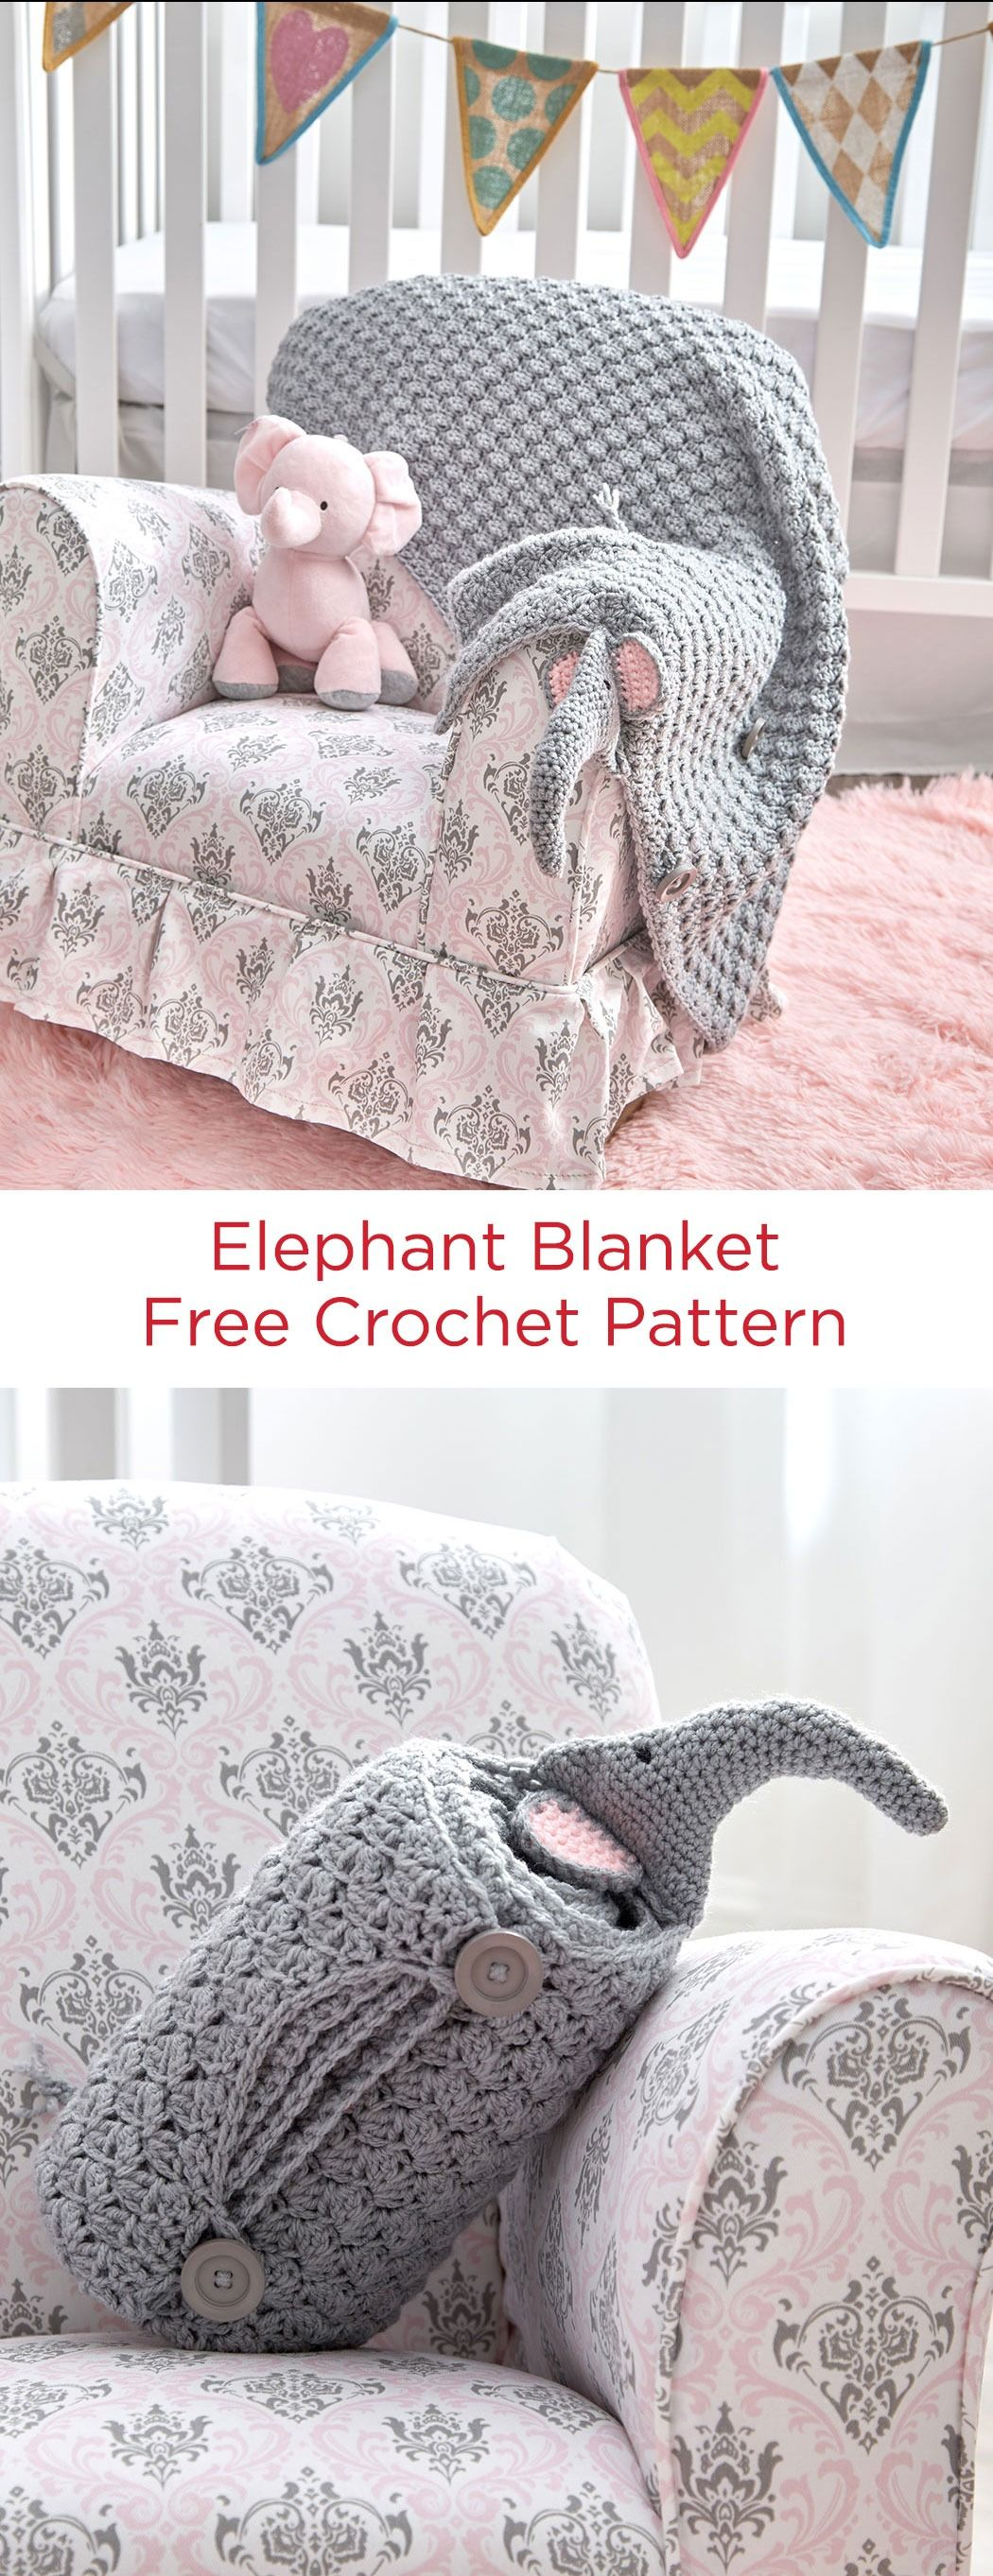 Elephant Blanket Free Crochet Pattern in Red Heart Yarns -- Here\'s a ...